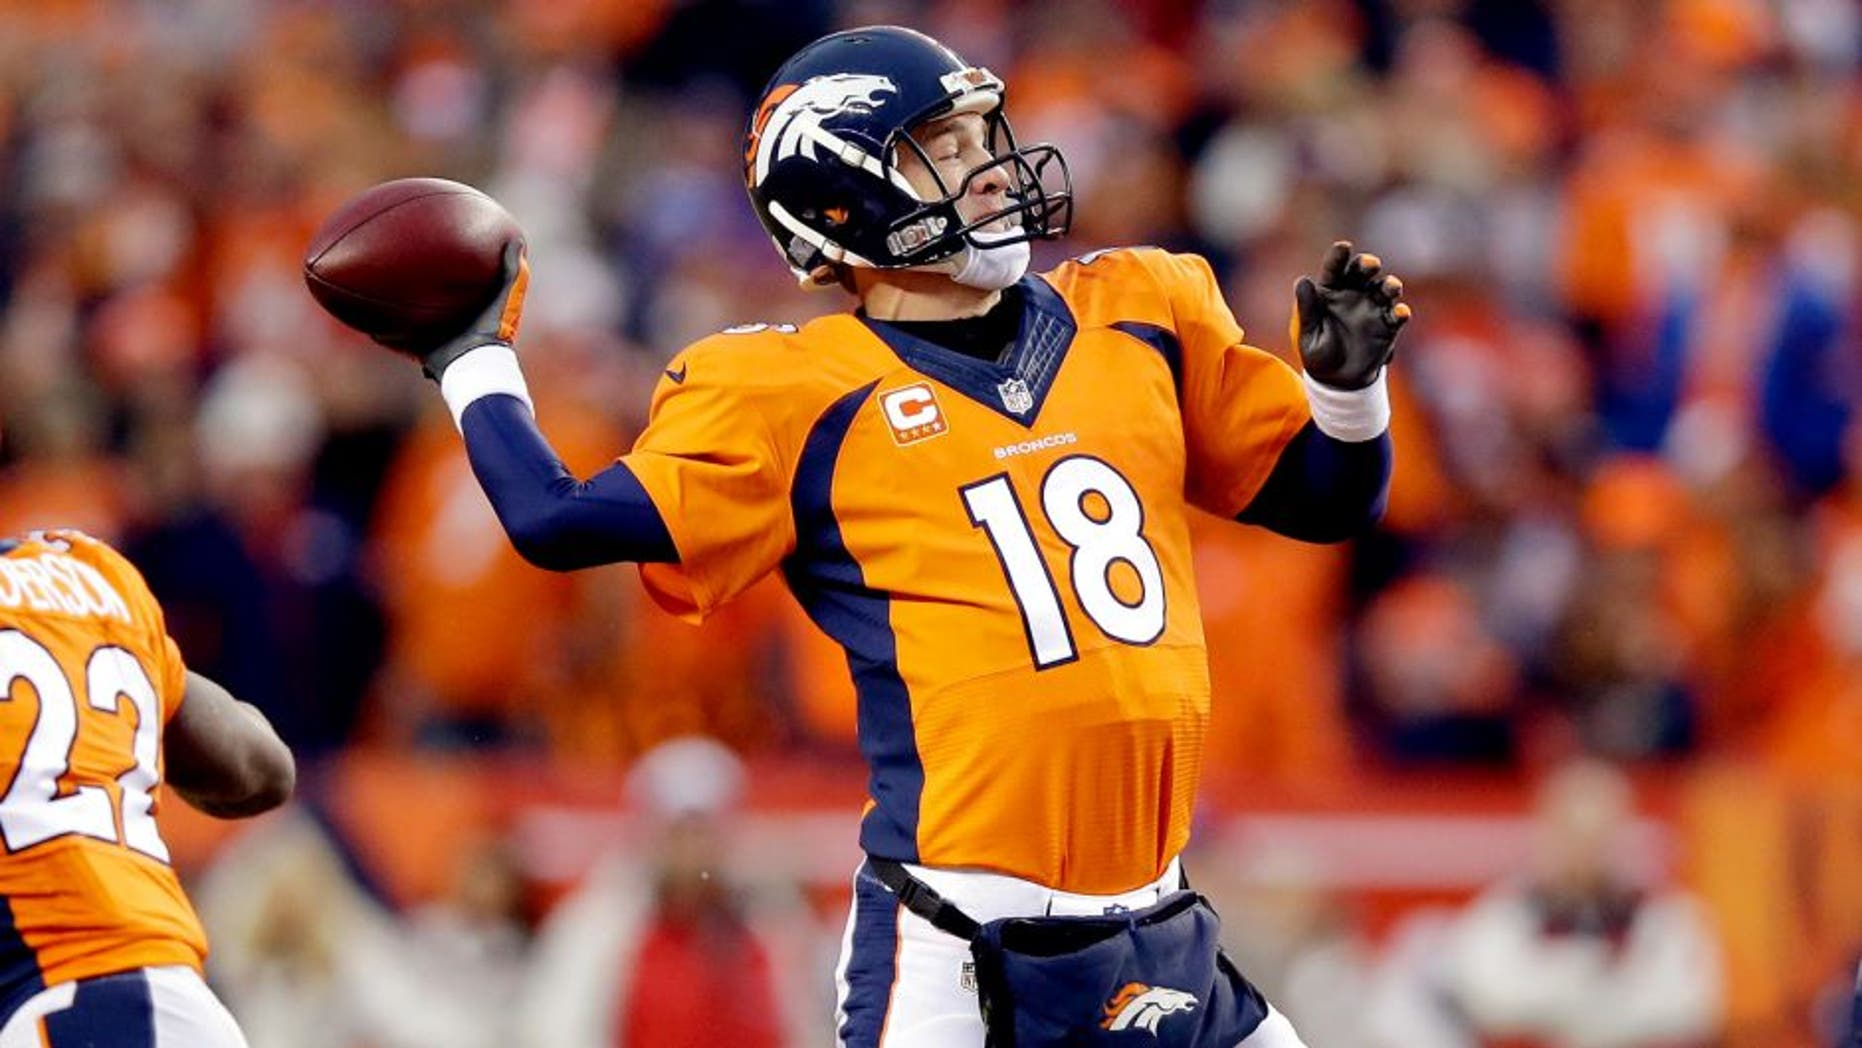 Peyton Manning #18 of the Denver Broncos passes against the Indianapolis Colts during a 2015 AFC Divisional Playoff game at Sports Authority Field at Mile High on January 11, 2015 in Denver, Colorado. (Photo by Ezra Shaw/Getty Images)